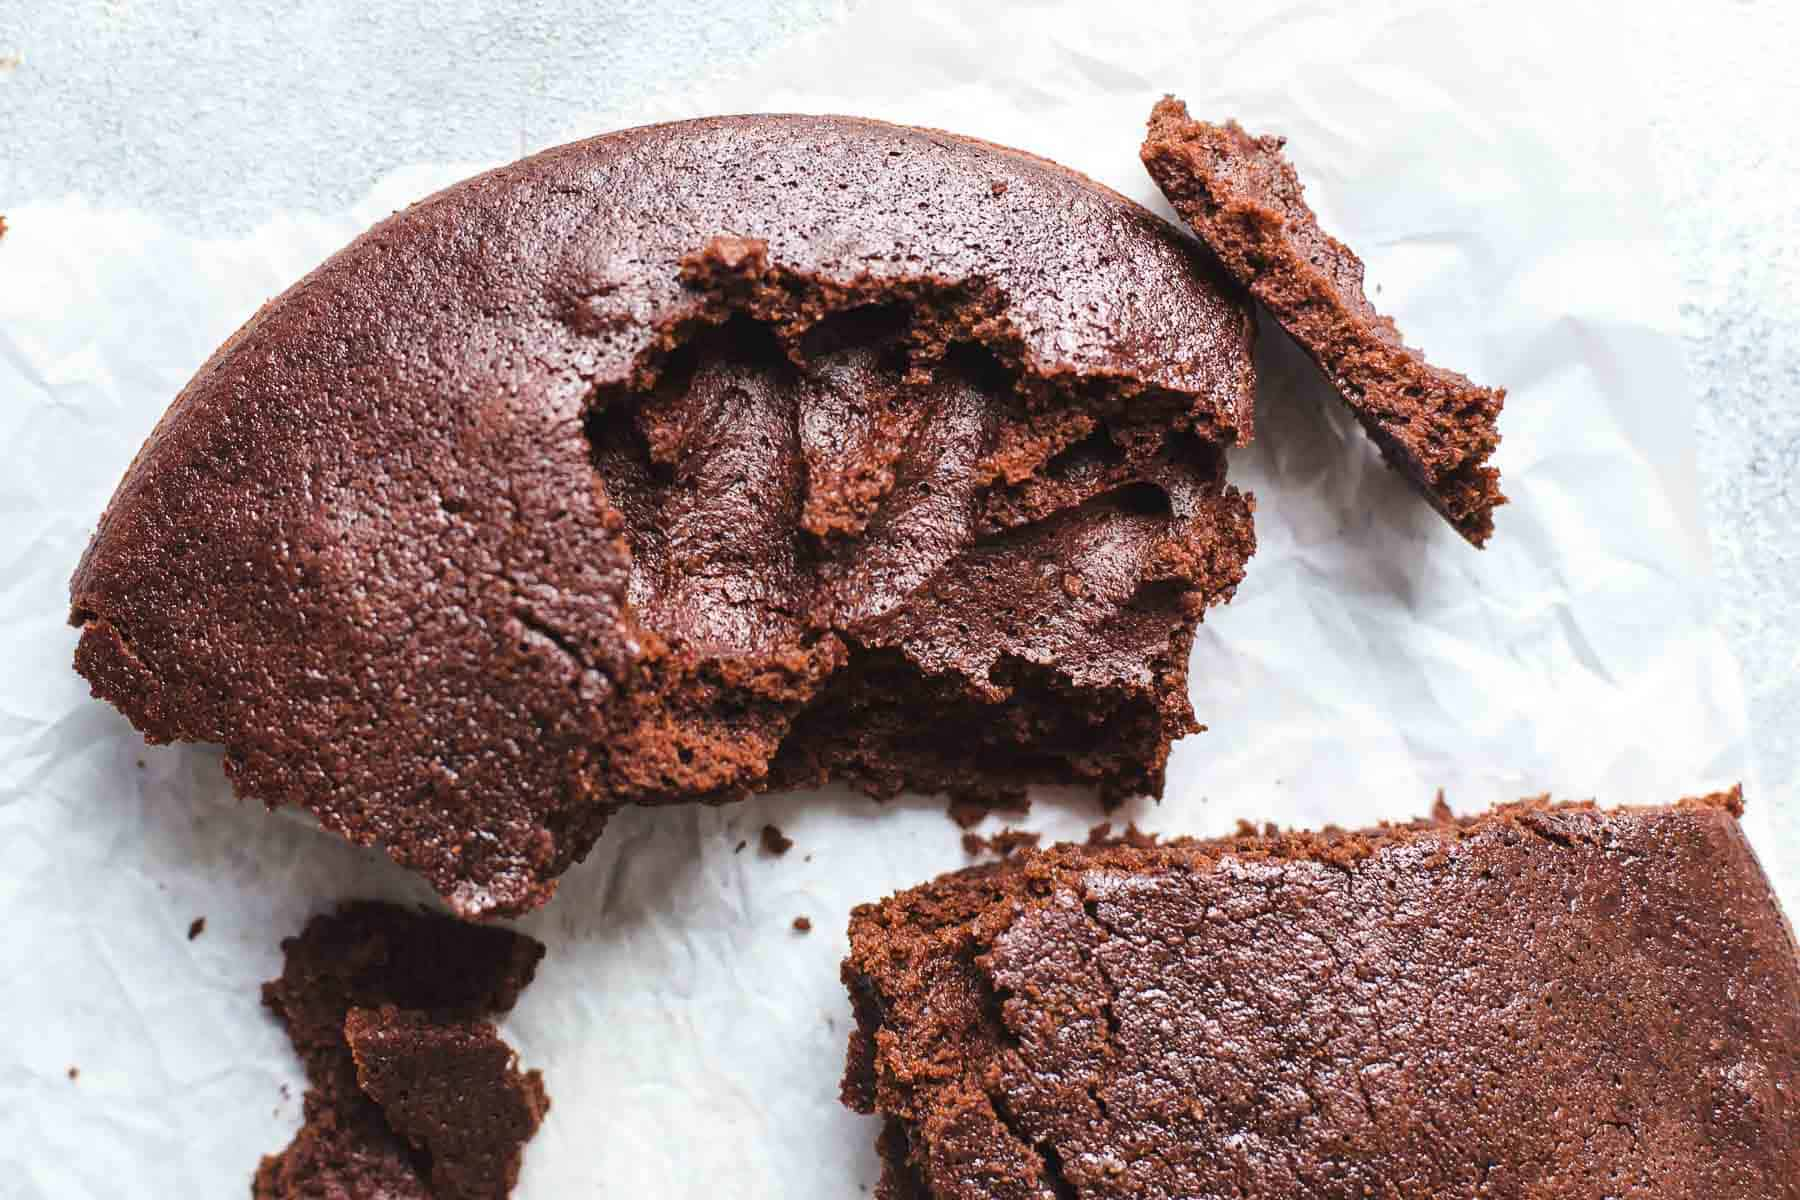 Overbaked chocolate cake